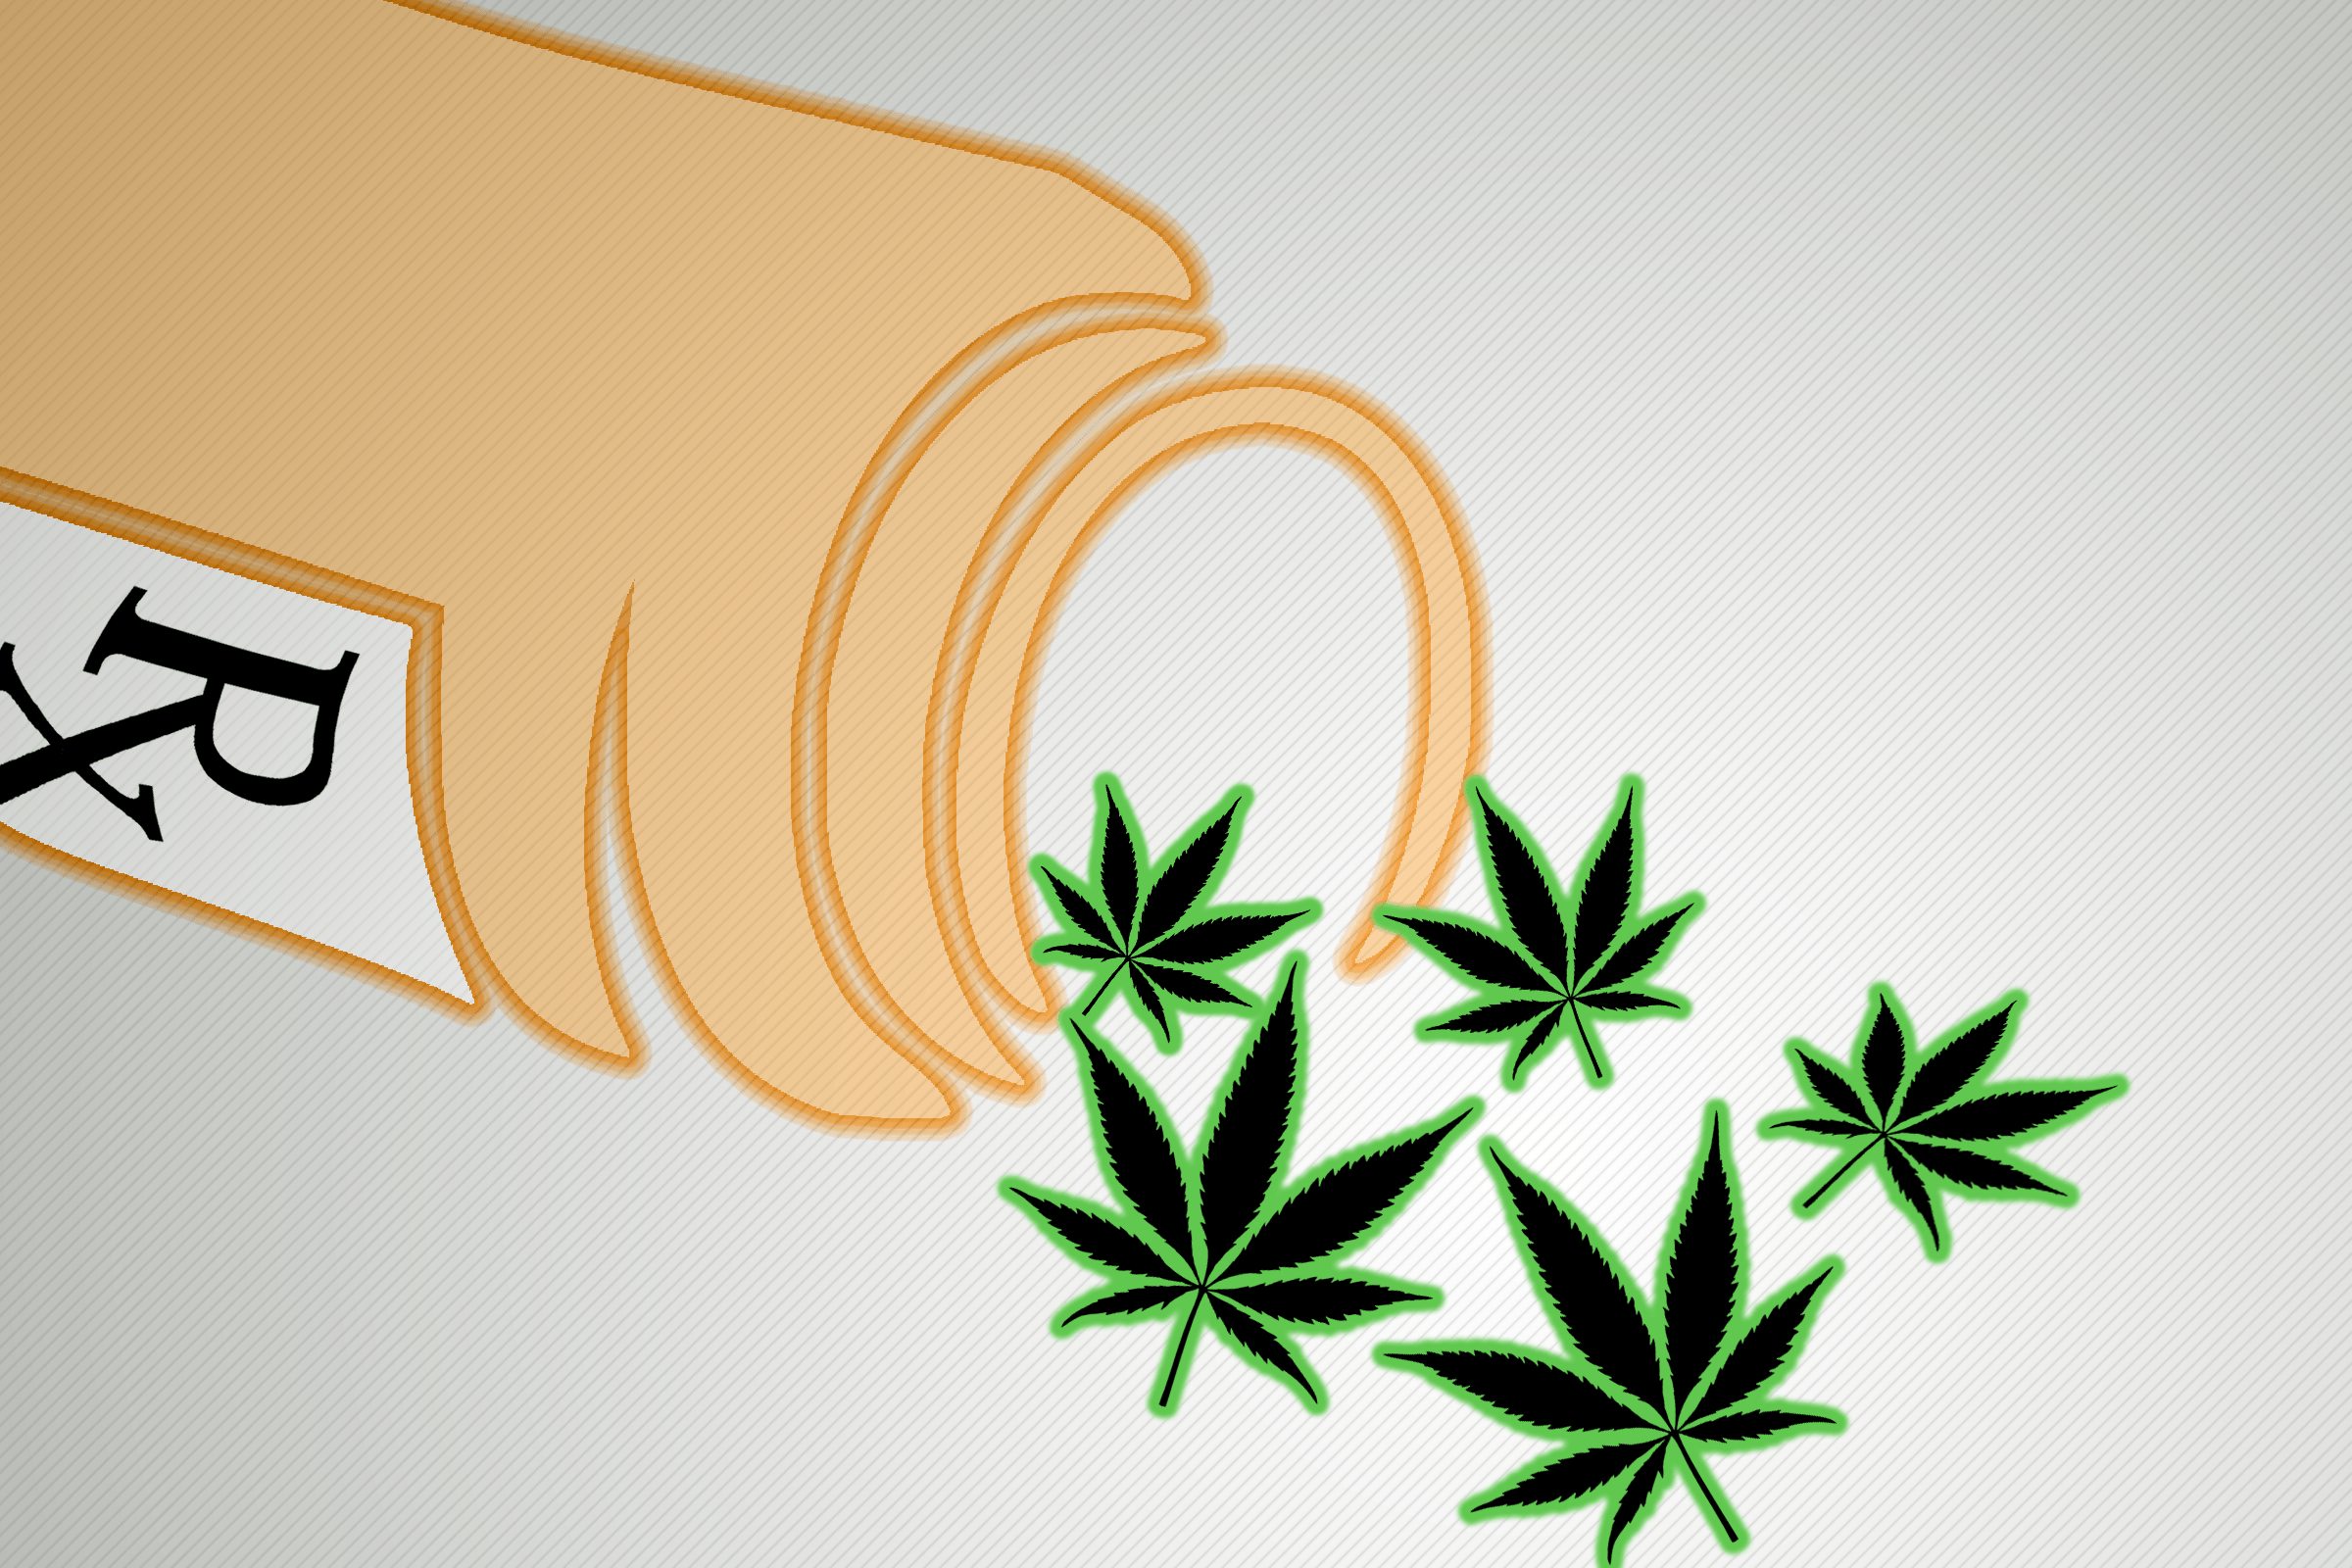 New York Department of Health to Allow Medical Cannabis as an Opioid Replacement